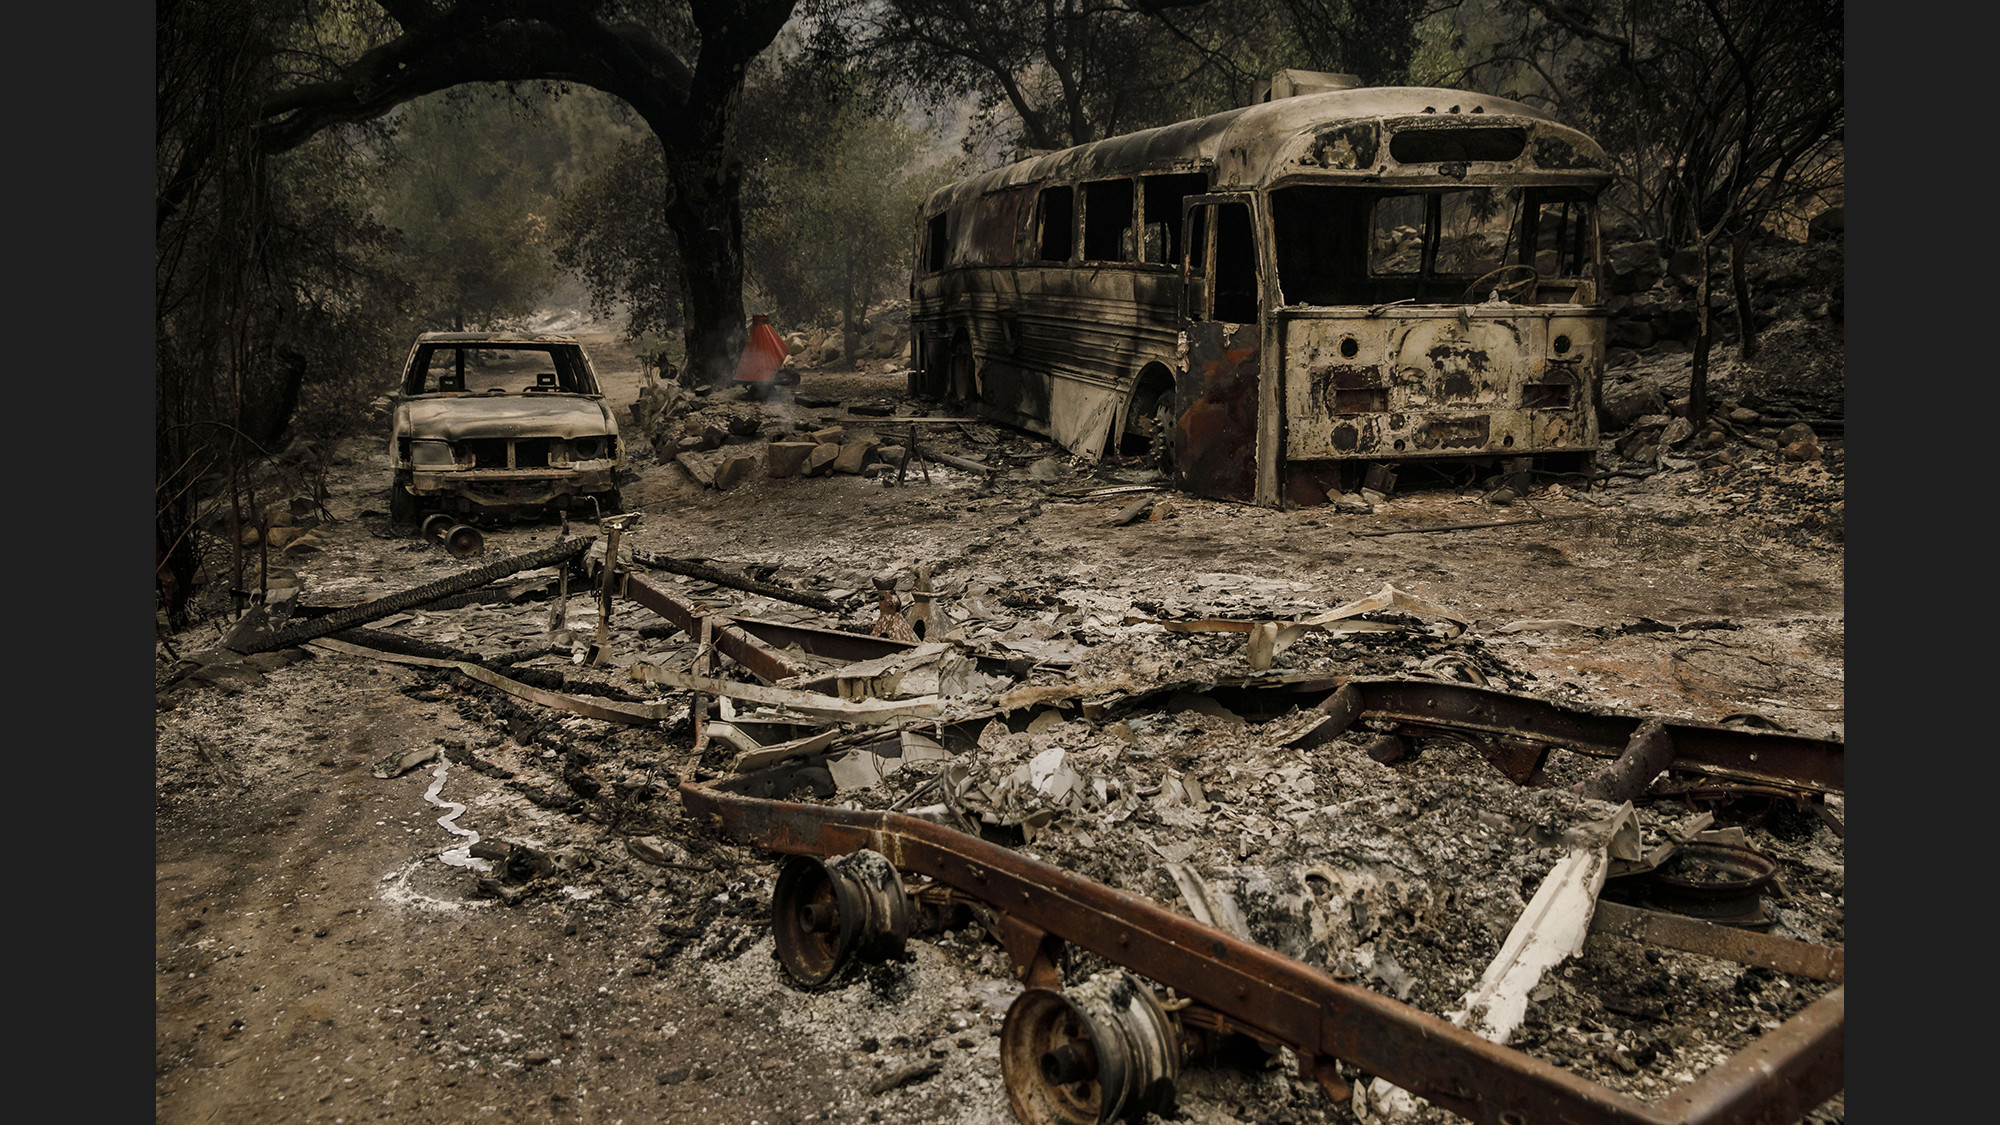 Thomas fire leaves behind barren 'moonscape' as it threatens Montecito, Carpinteria